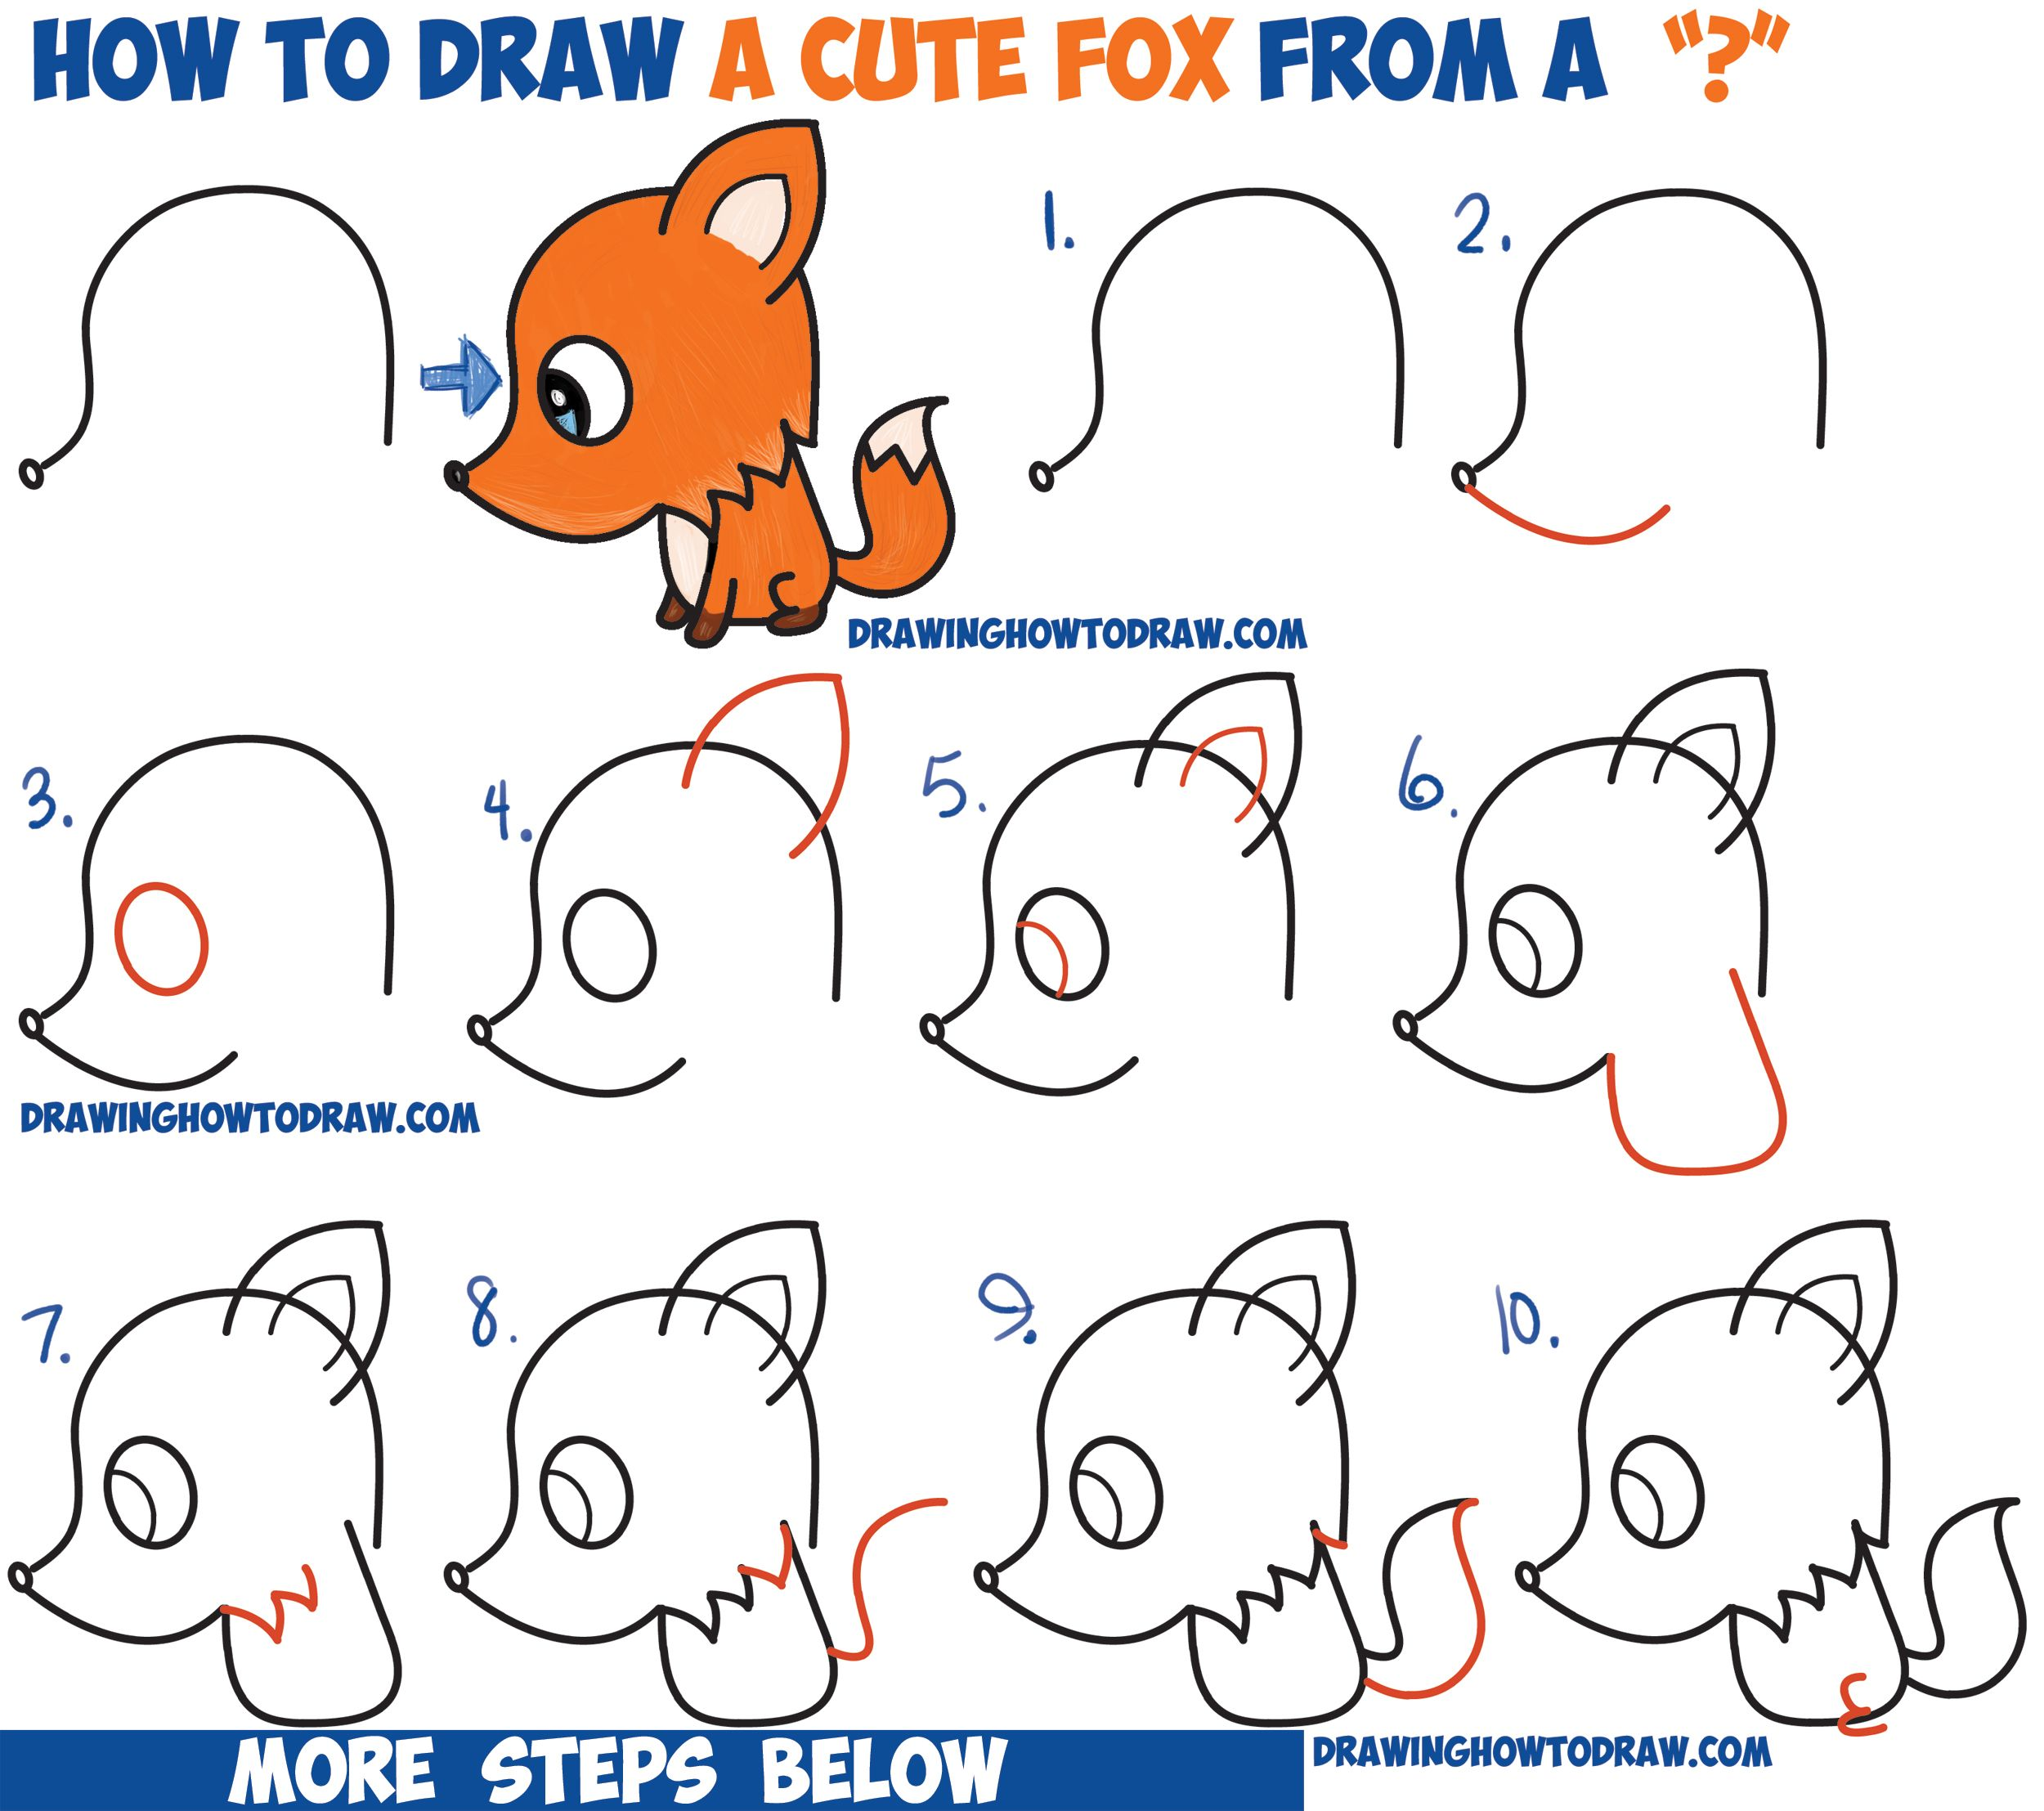 How to Draw a Cute Cartoon Fox from a Question Mark ...